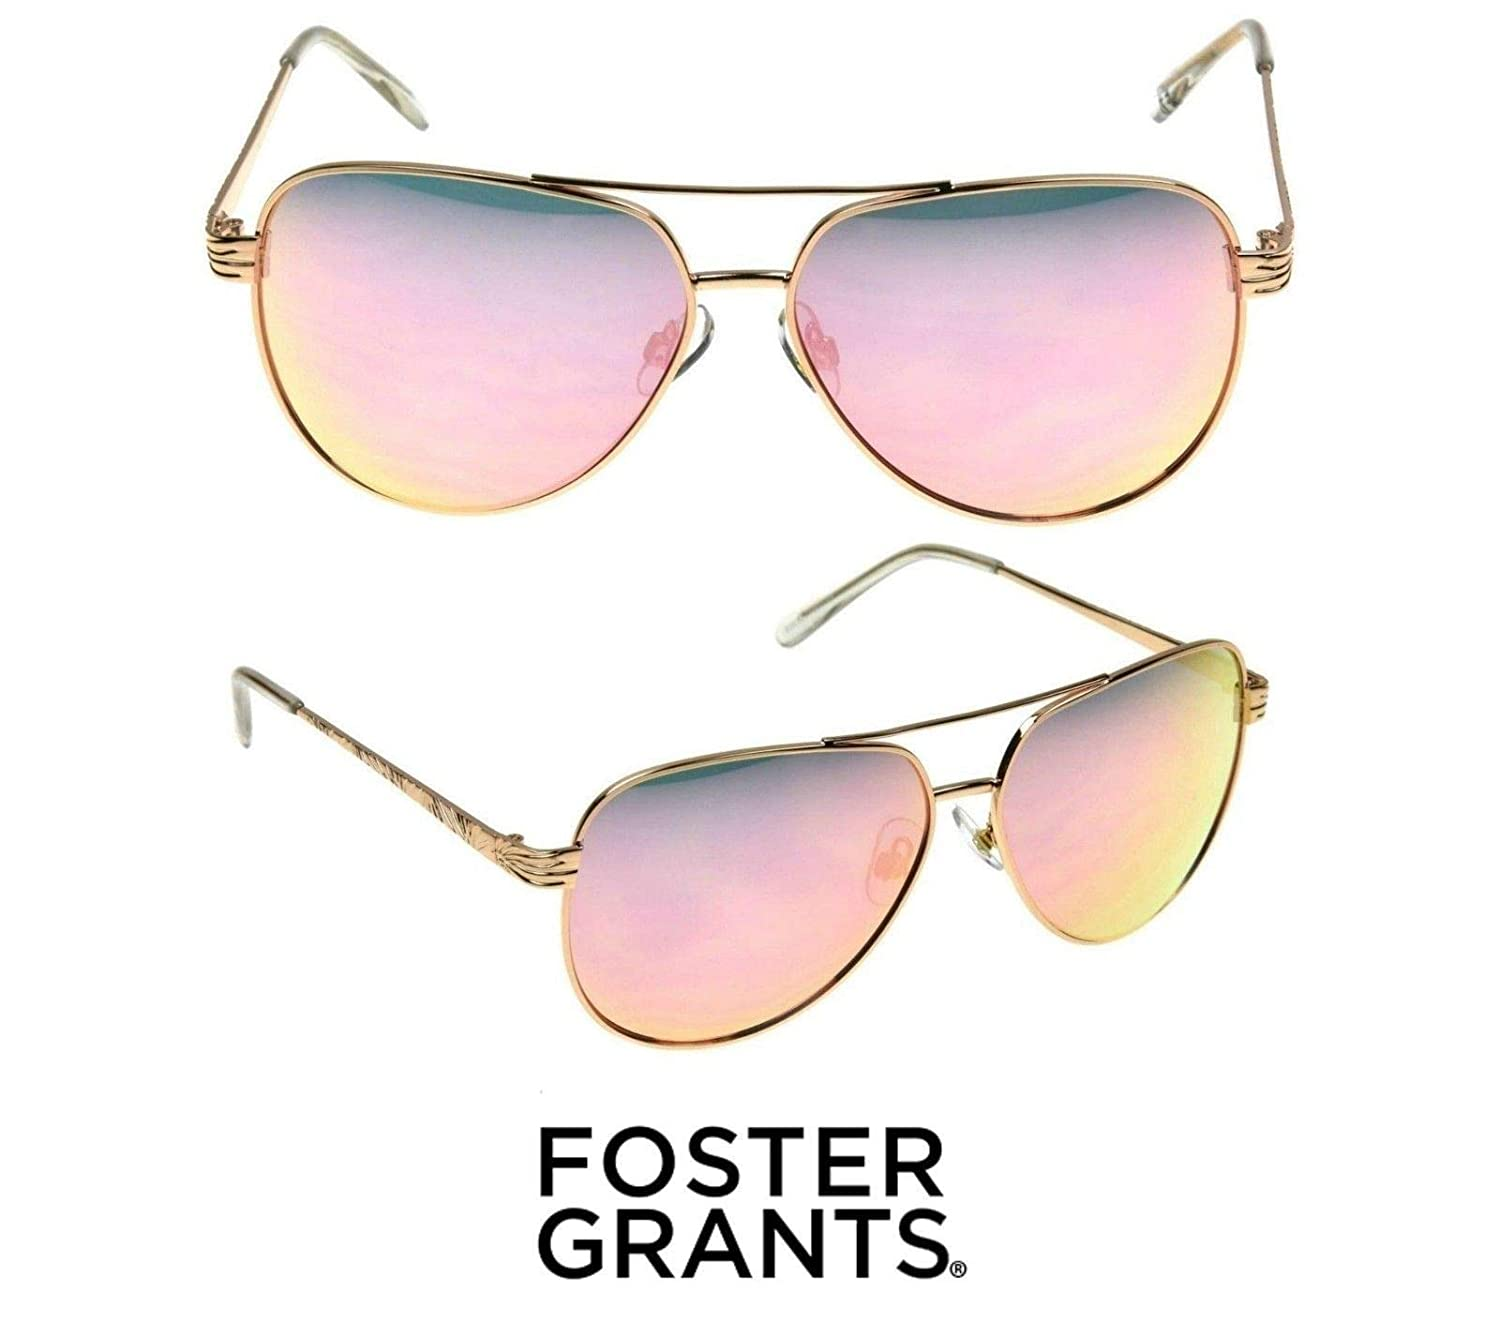 bb263b584 Amazon.com: Foster Grant Women's Aviator 8 Sunglasses for Ladies Rose Gold  Color: Clothing